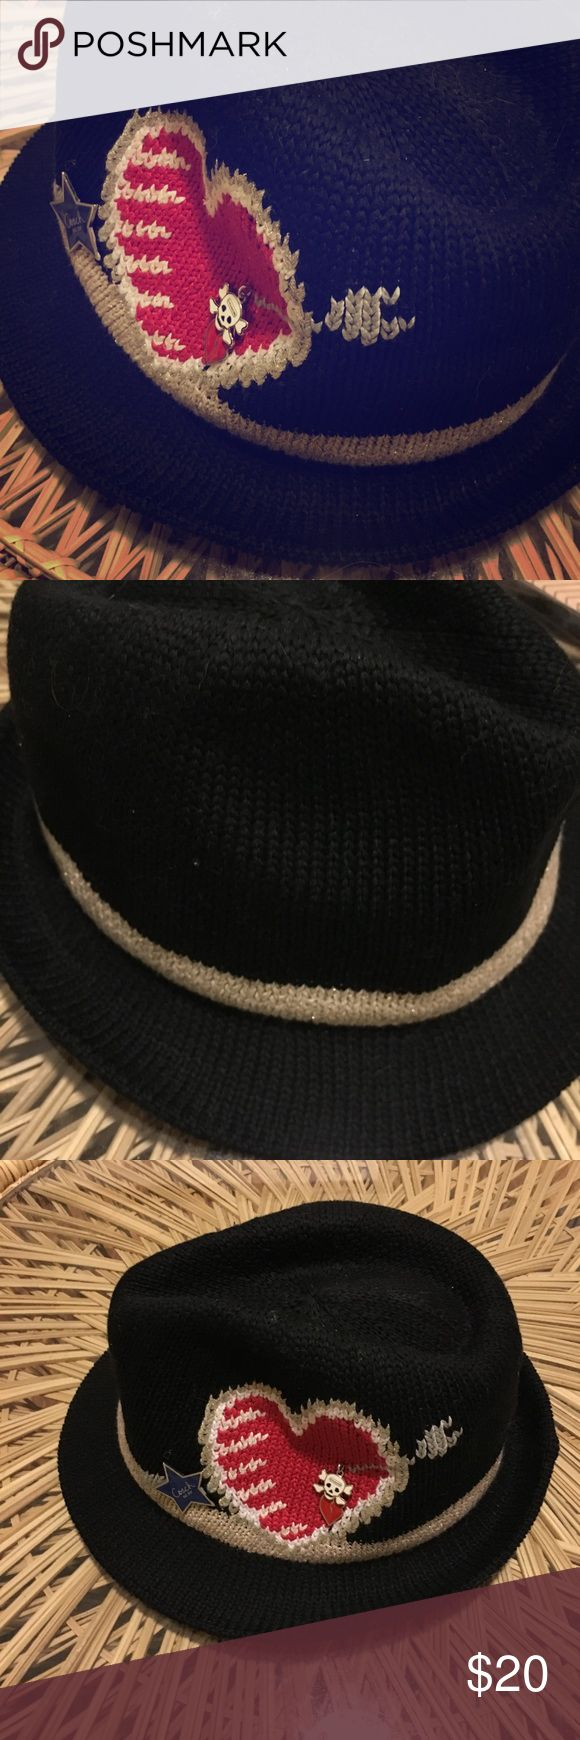 heartfelt COACH trilby hat Pun intended: This is a dark-as-night felt hat from Coach with a brilliant heart motif. Like new. Three charms: blue star (engraved with Coach logo), a skull and crossbones and puckered lips adorn the motif. Message me for more photos/angles of the hat. Coach Accessories Hats